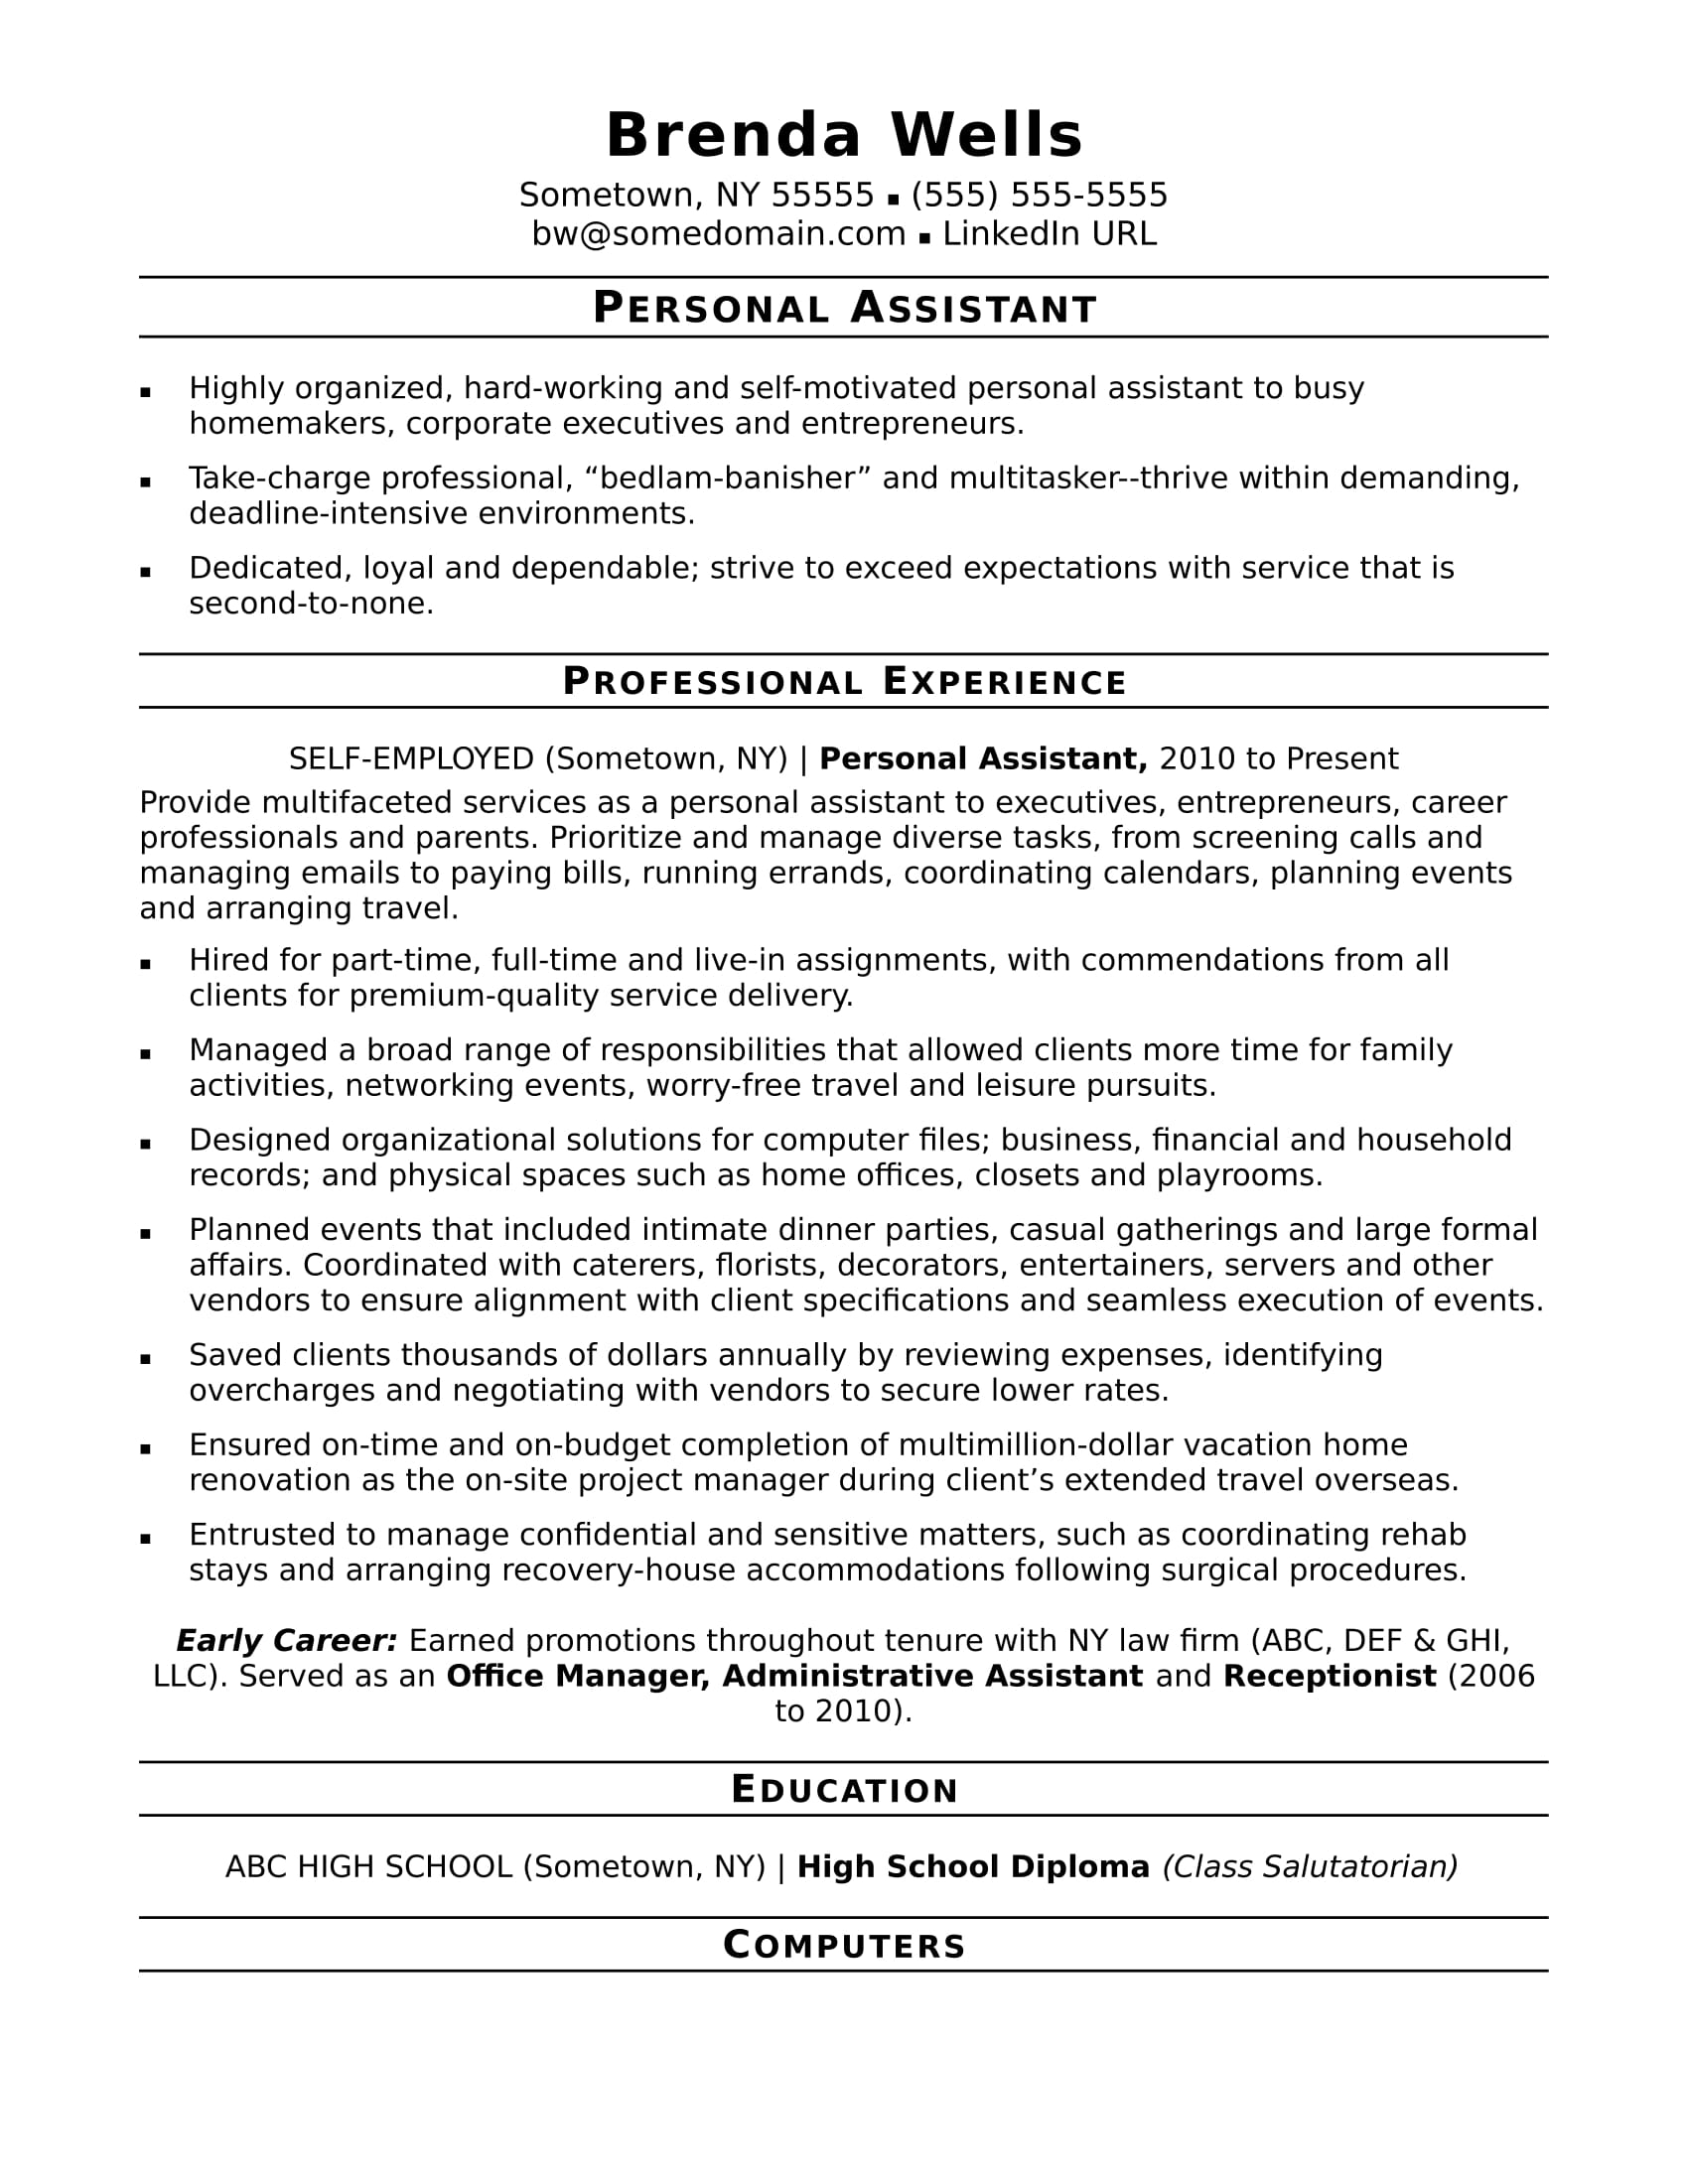 personal assistant resume sample monster highly organized high school student peoplesoft Resume Highly Organized Resume